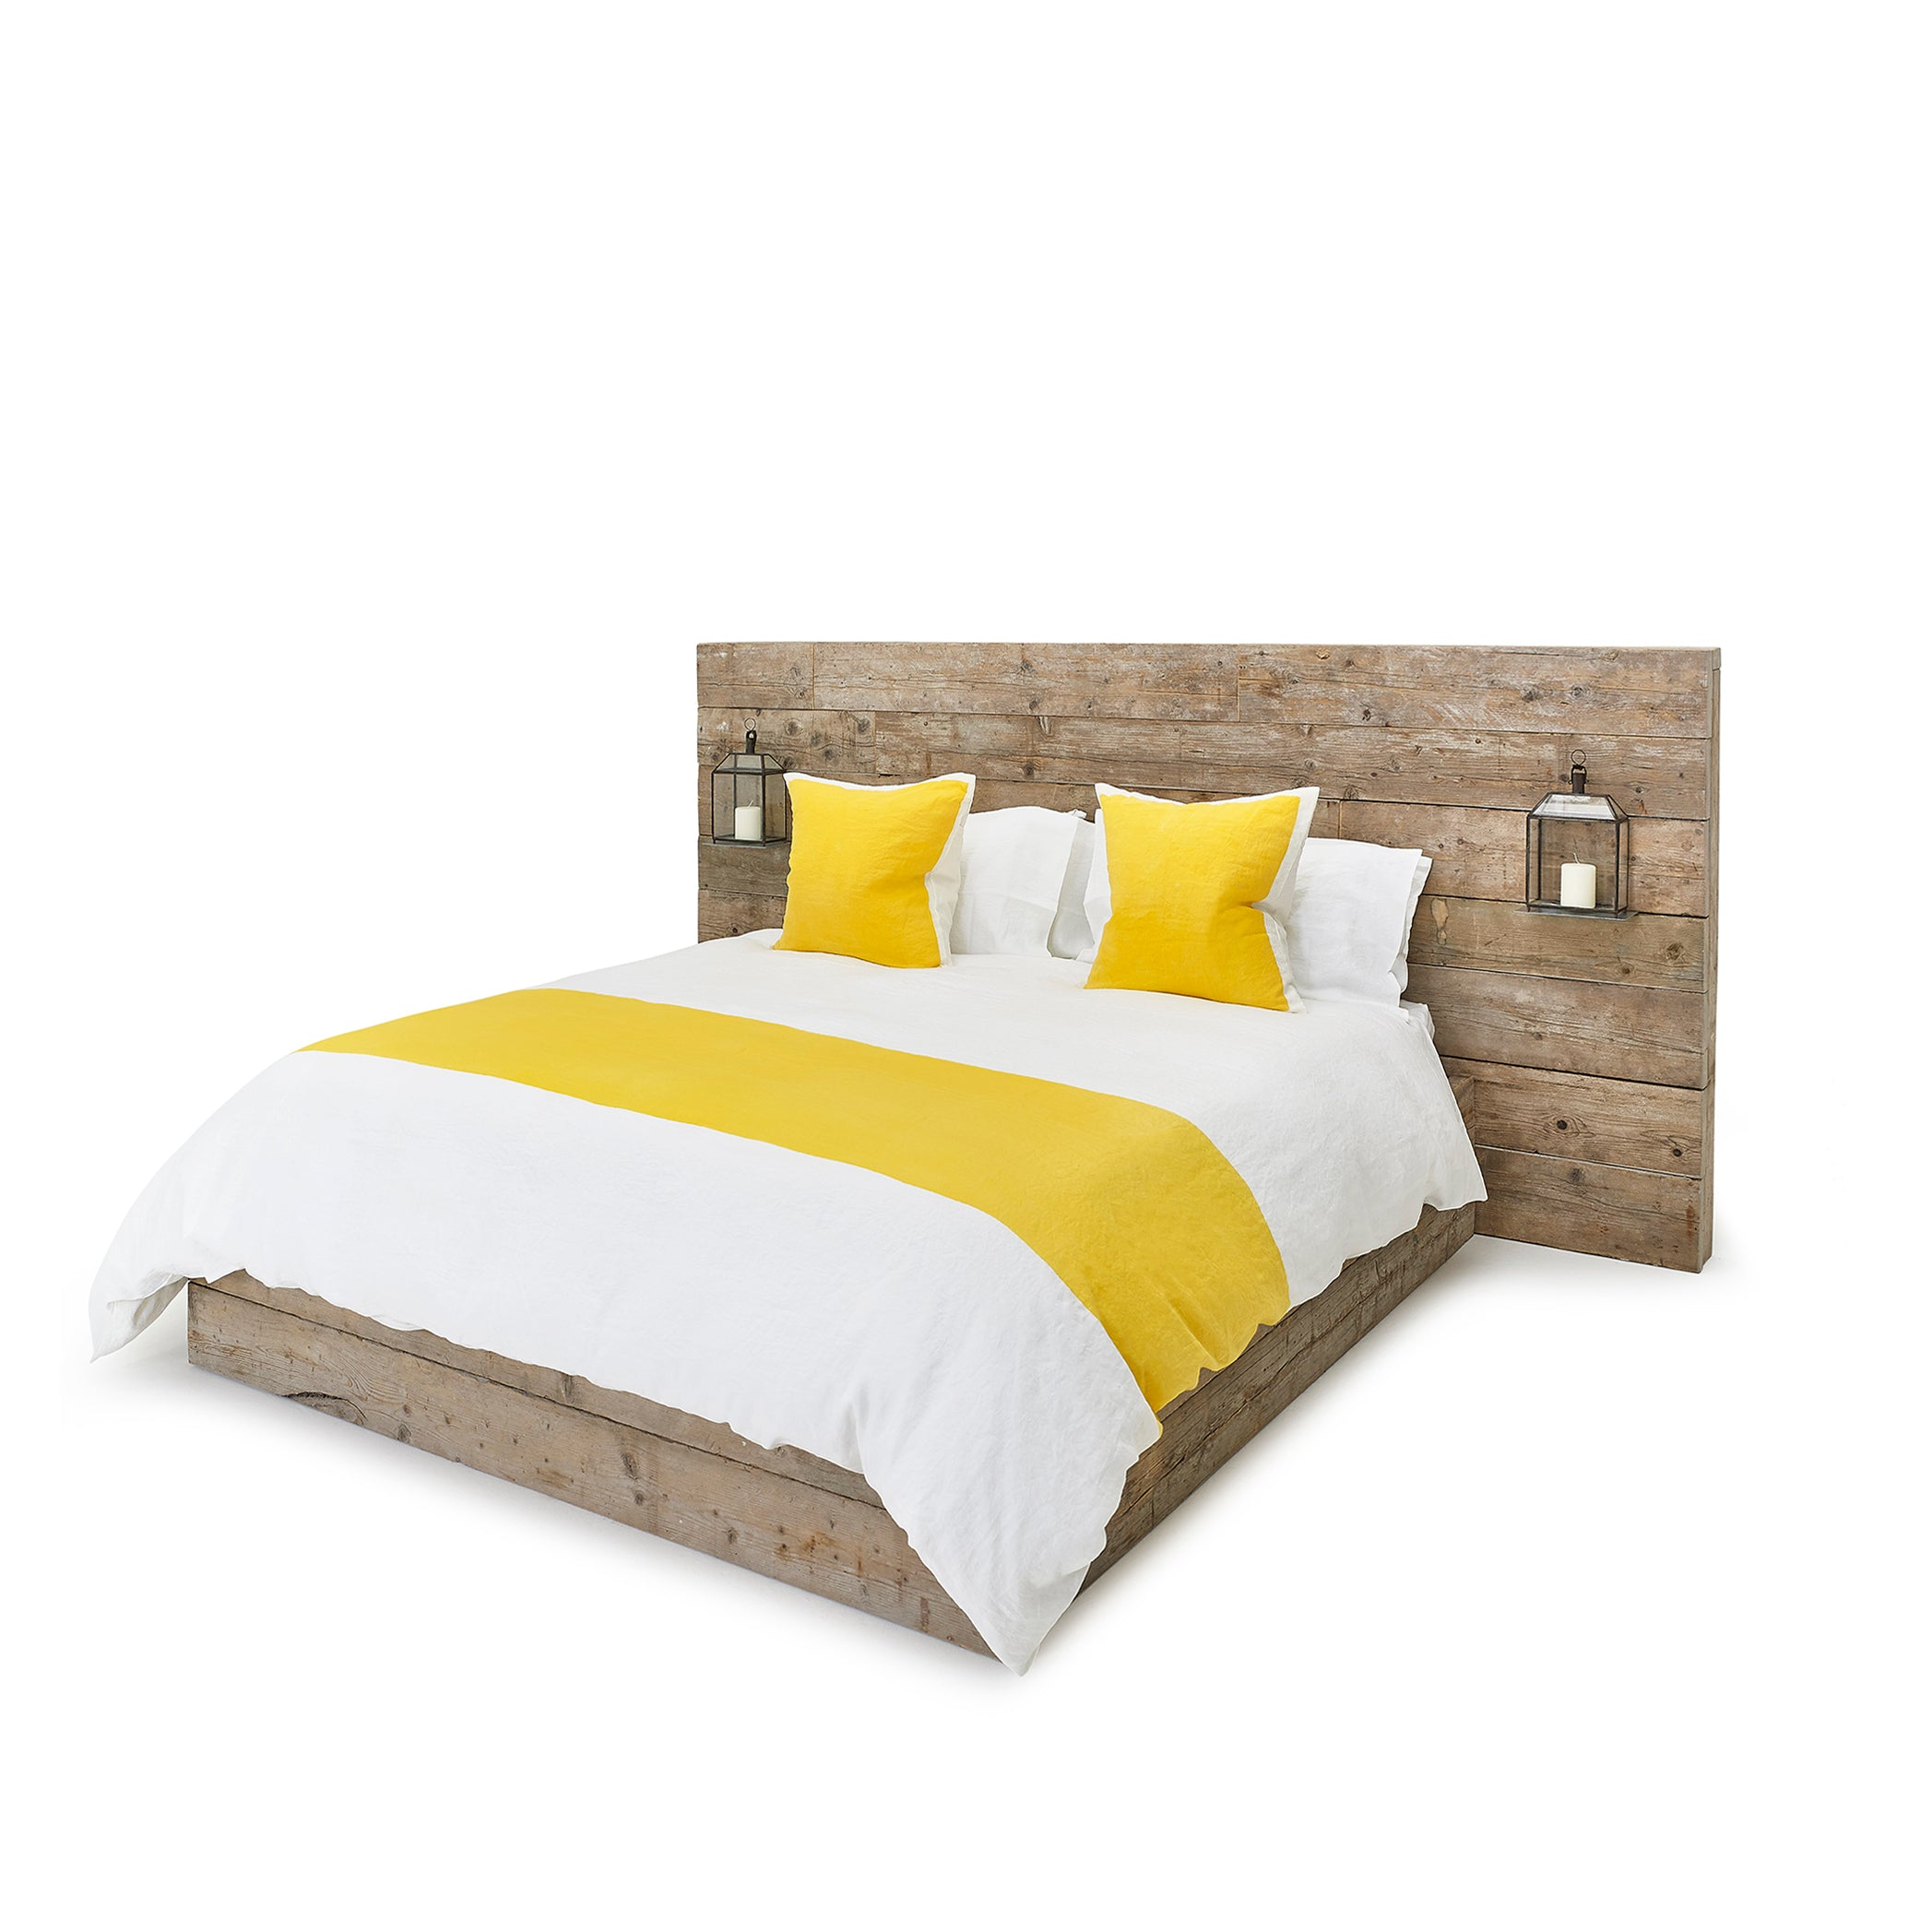 """S&B Classic"" Linen Bed Set in Lemon Yellow, King"